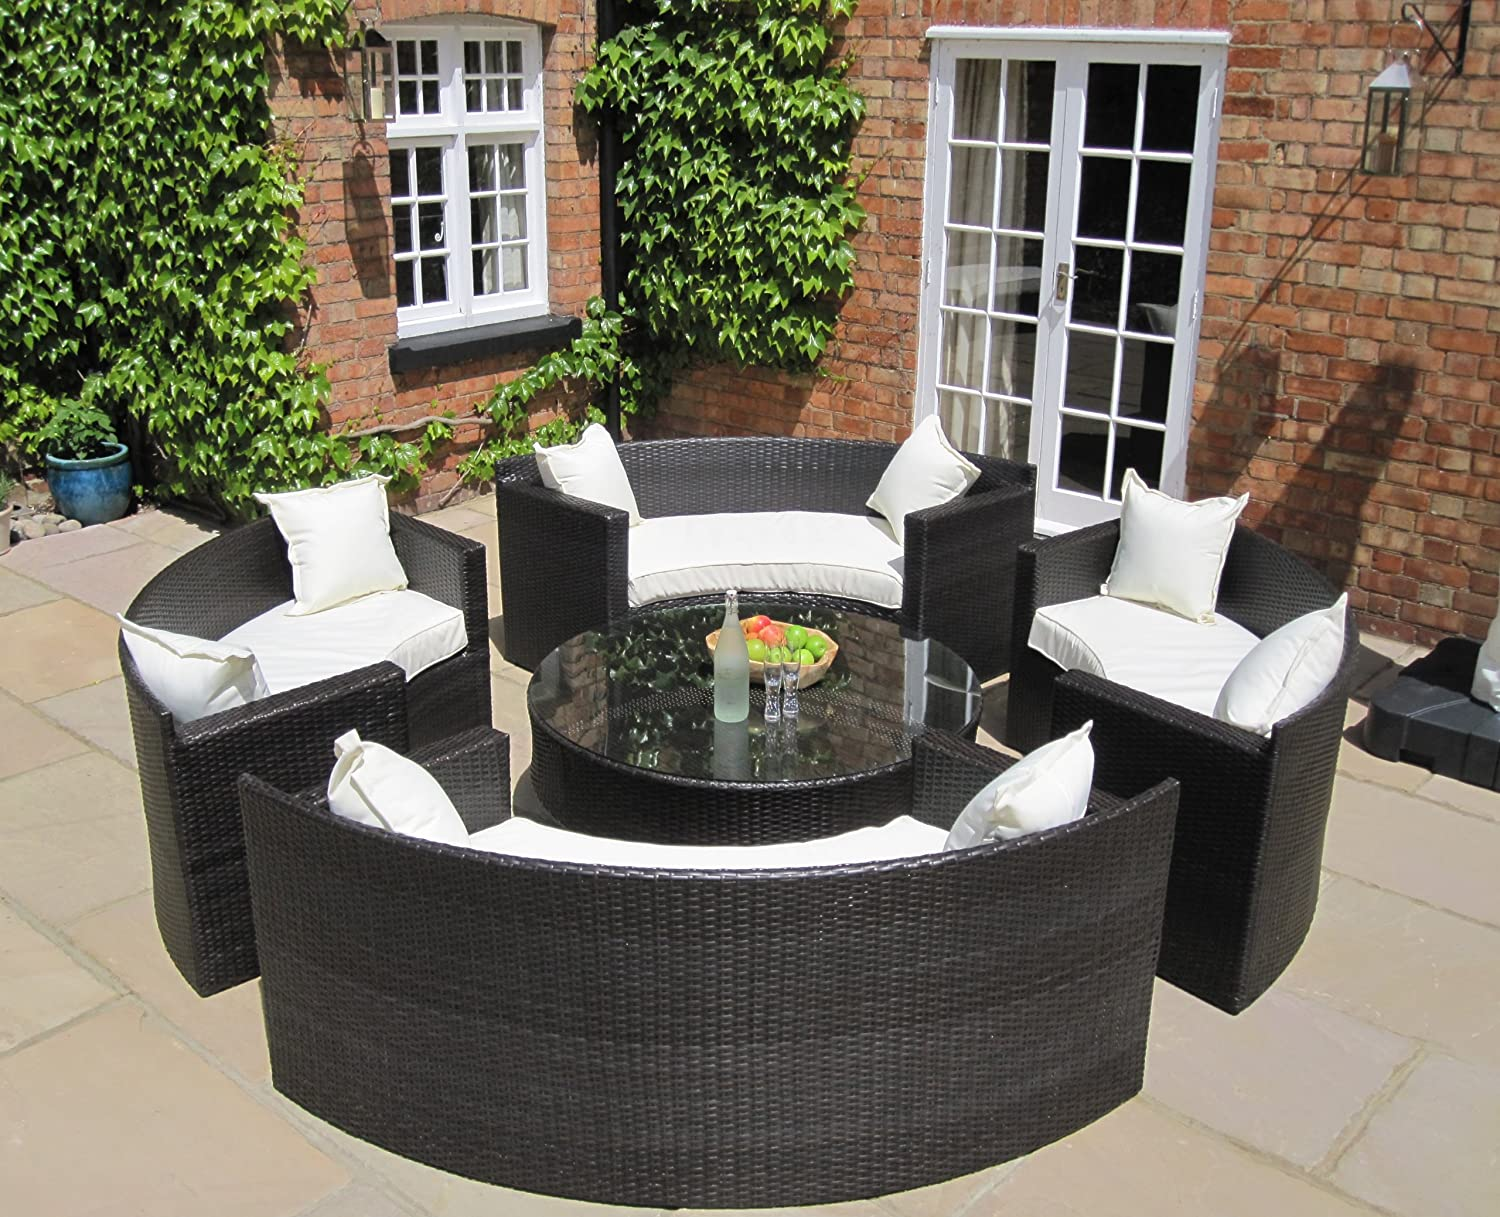 lauren luxury grey rattan garden furniture circular sofa and coffee table set amazoncouk kitchen home